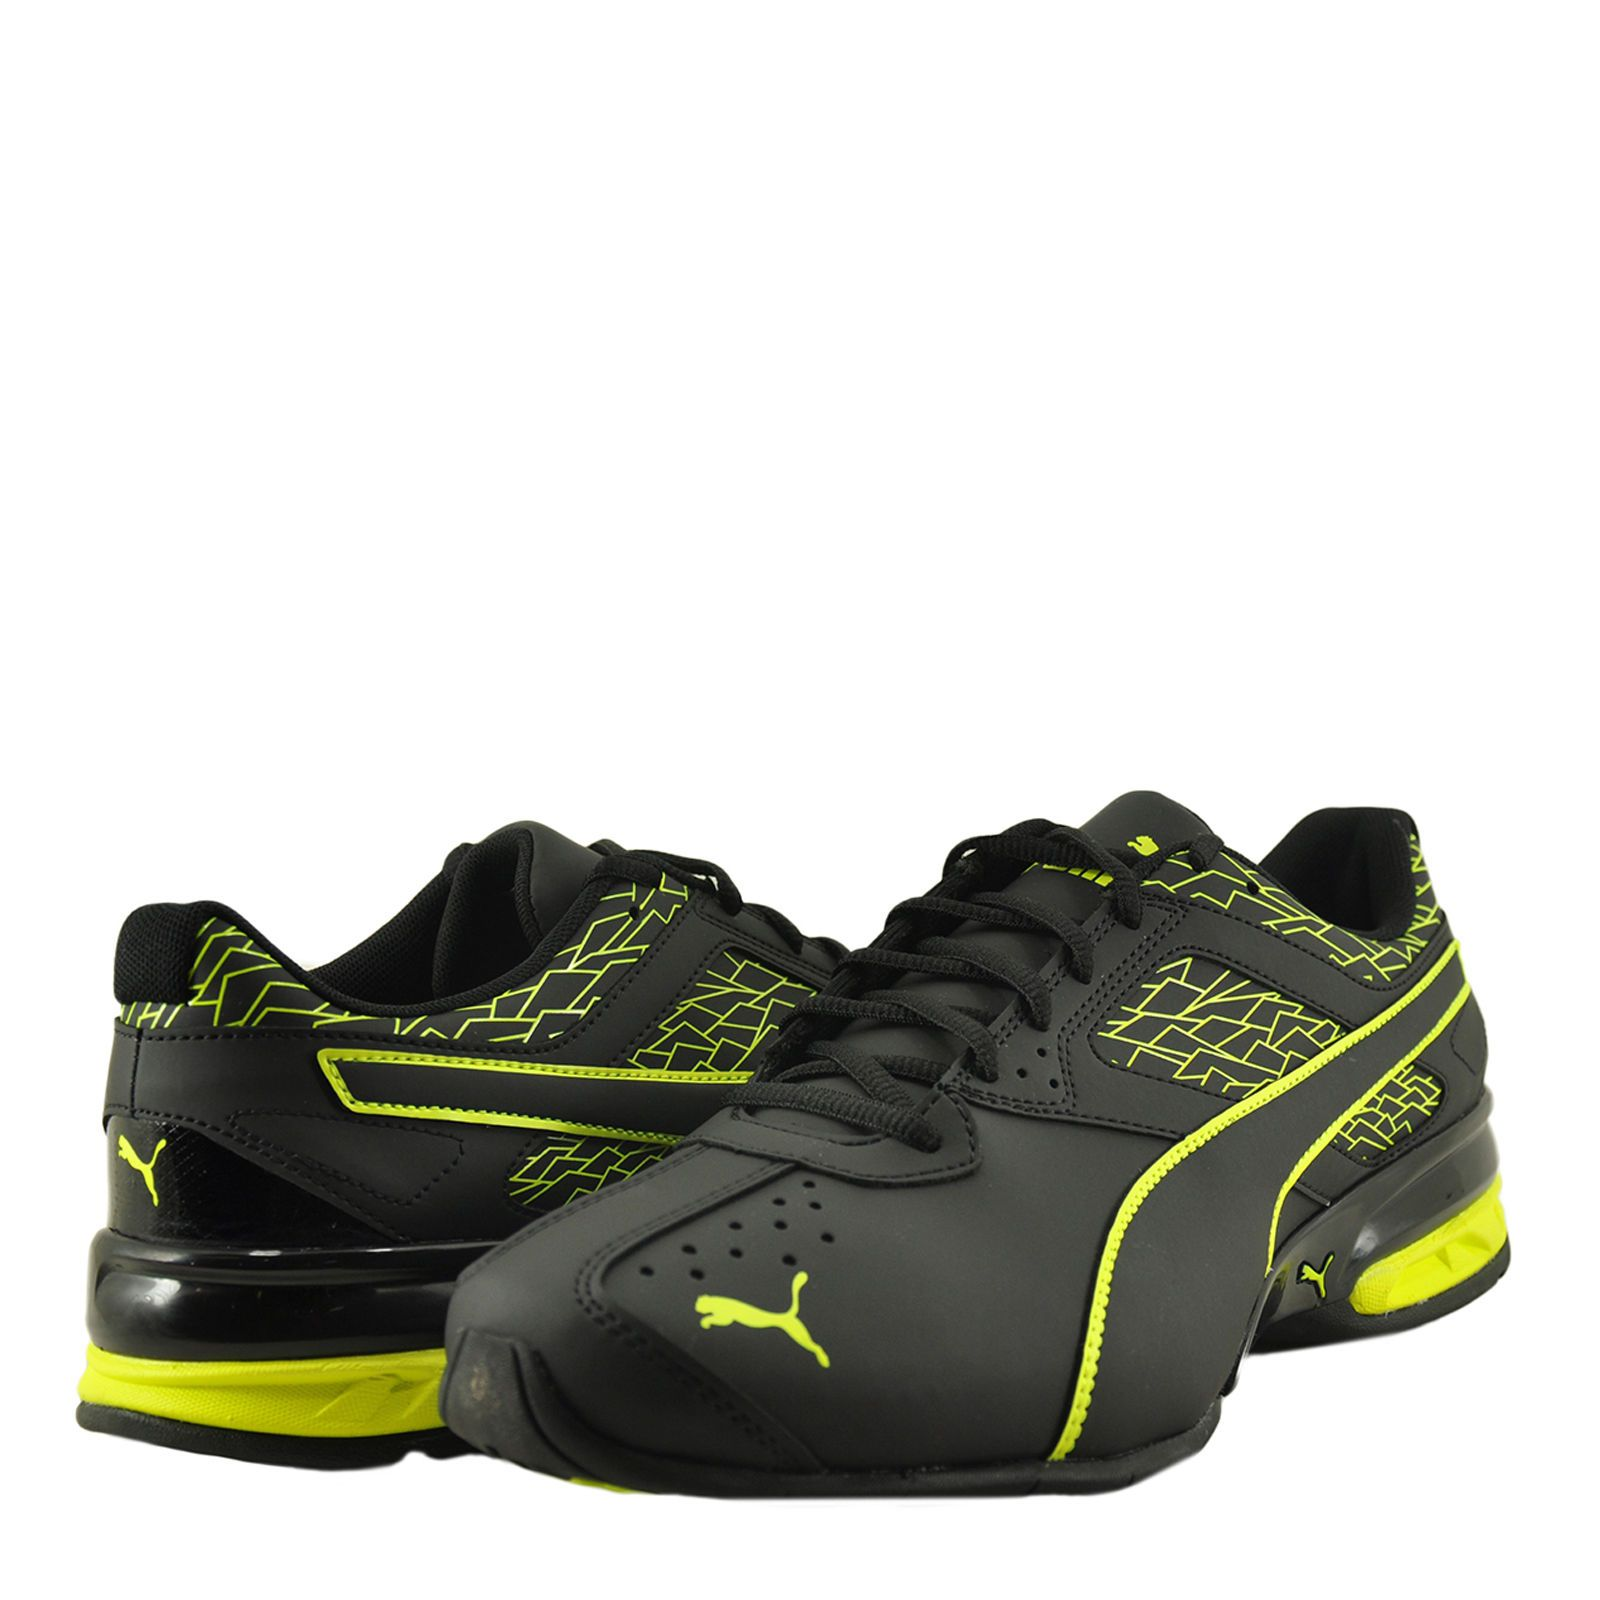 PUMA Mens Tazon 6 Fracture FM Cross-Trainer Shoe